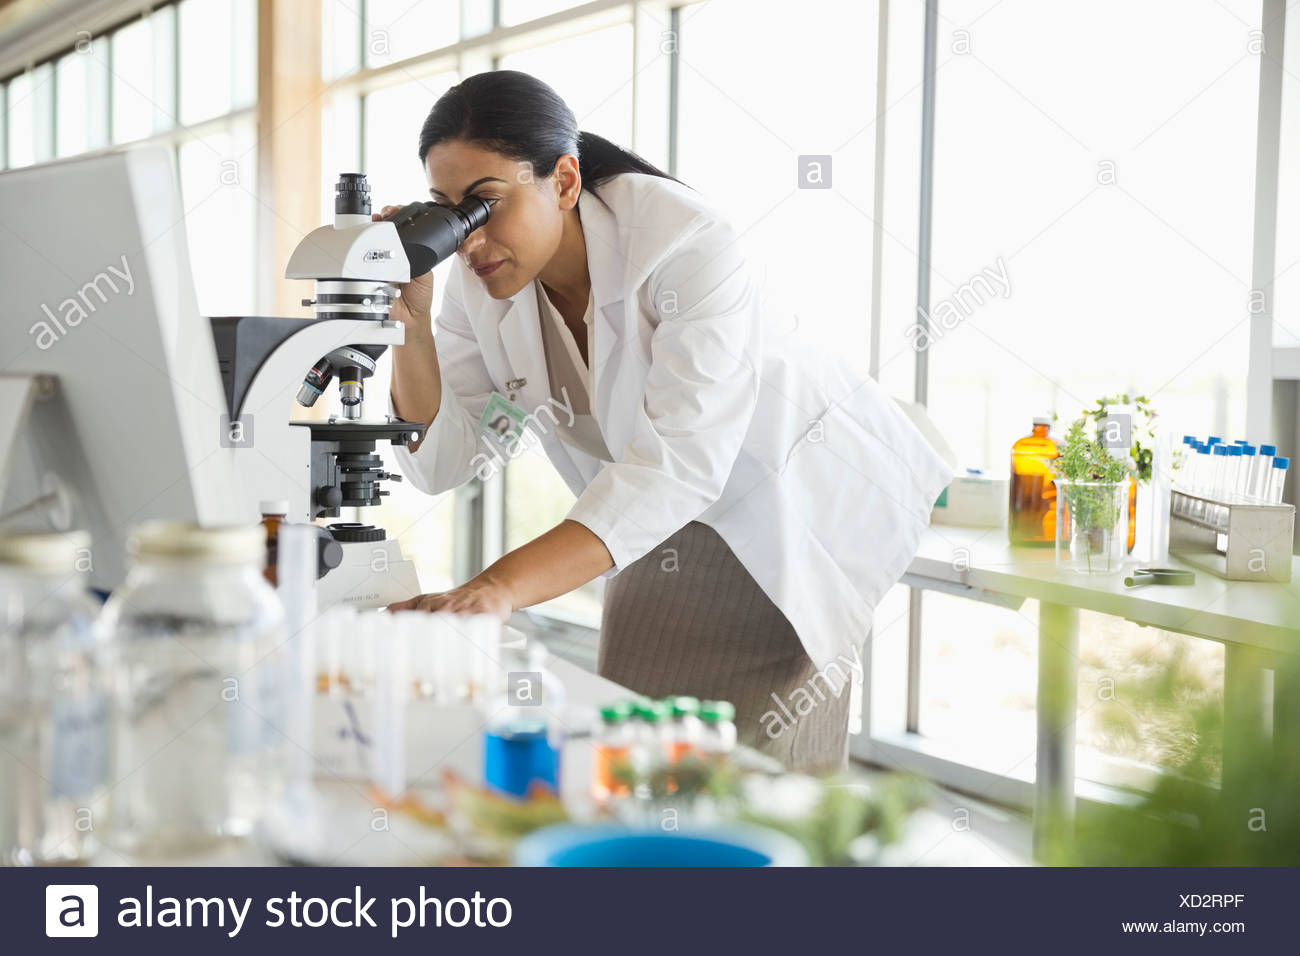 Female botanist looking through microscope - Stock Image